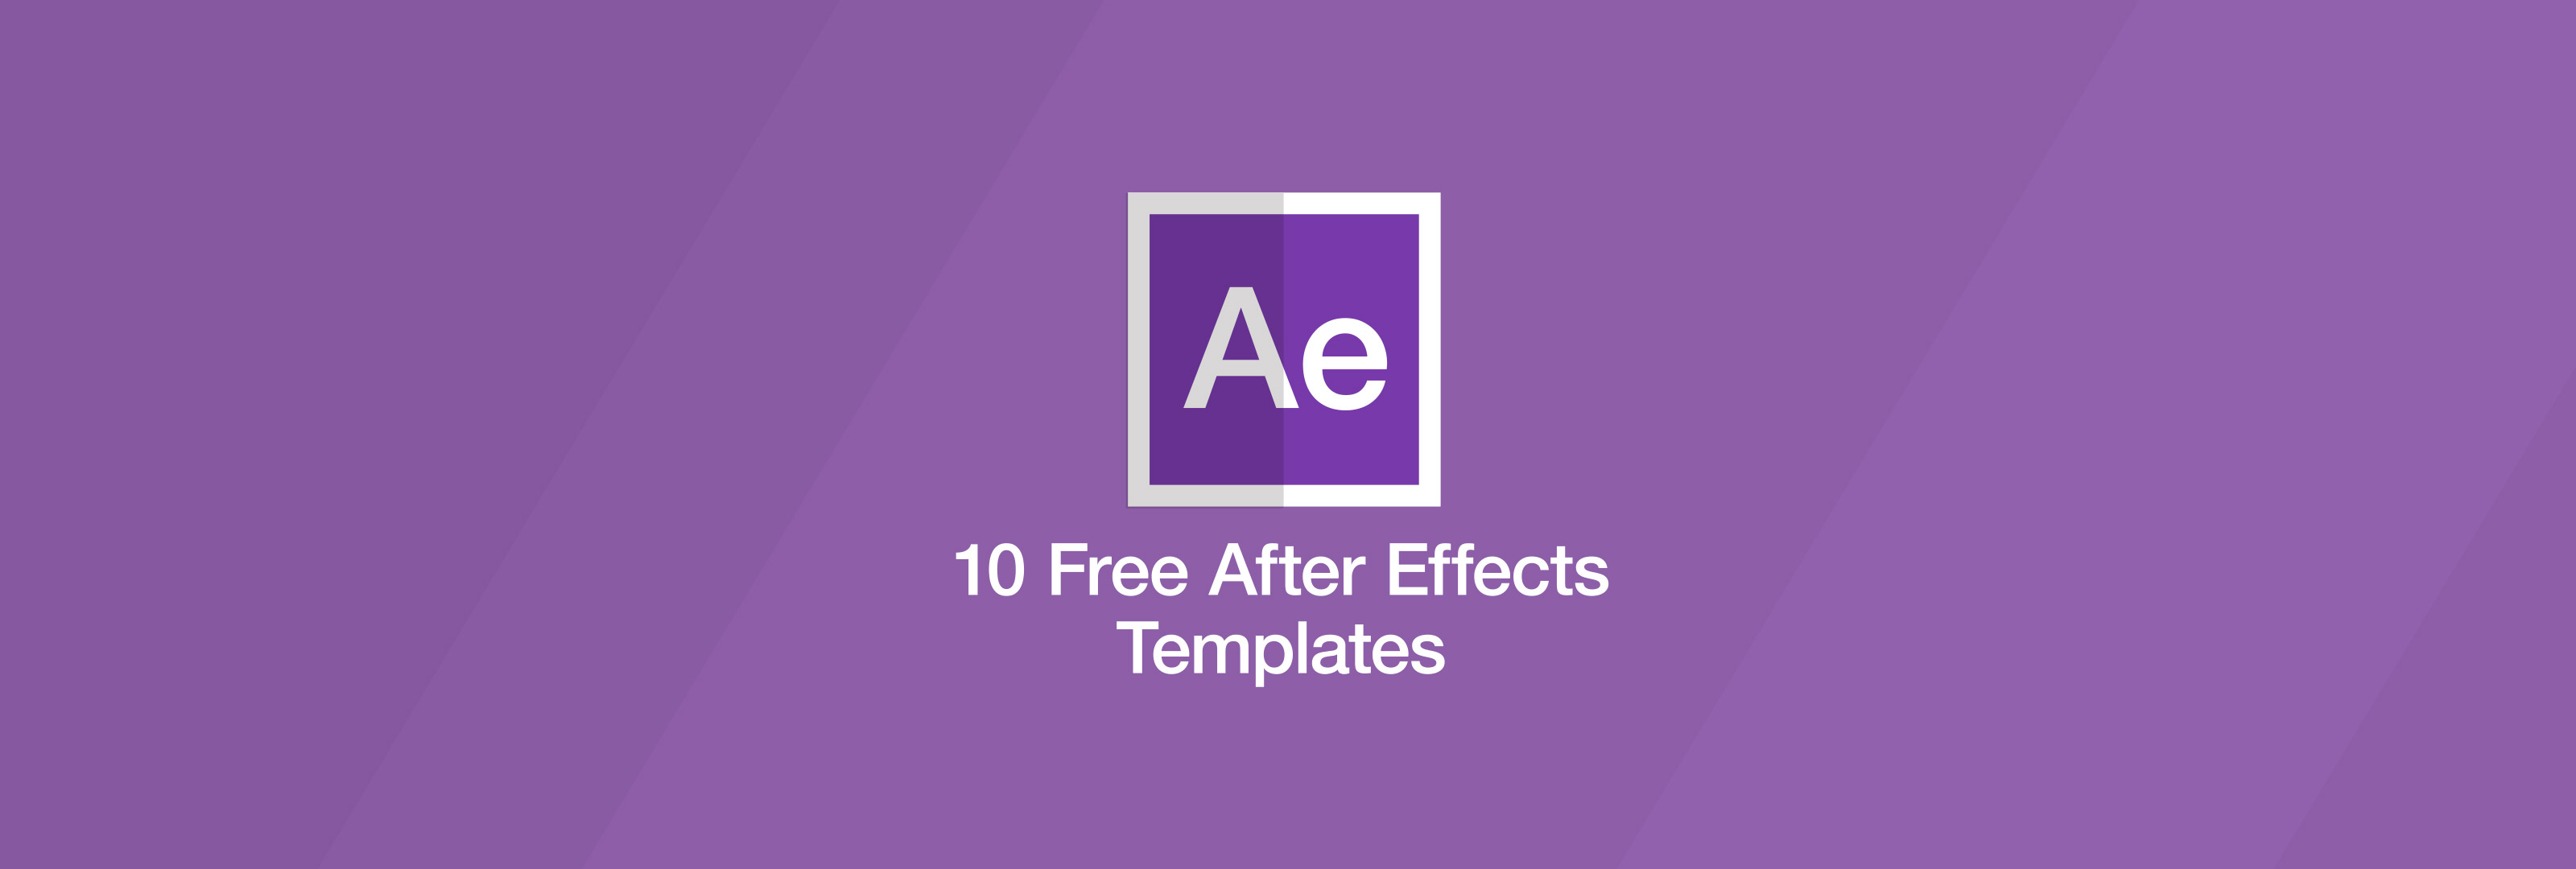 free after effects templates - Selo.l-ink.co